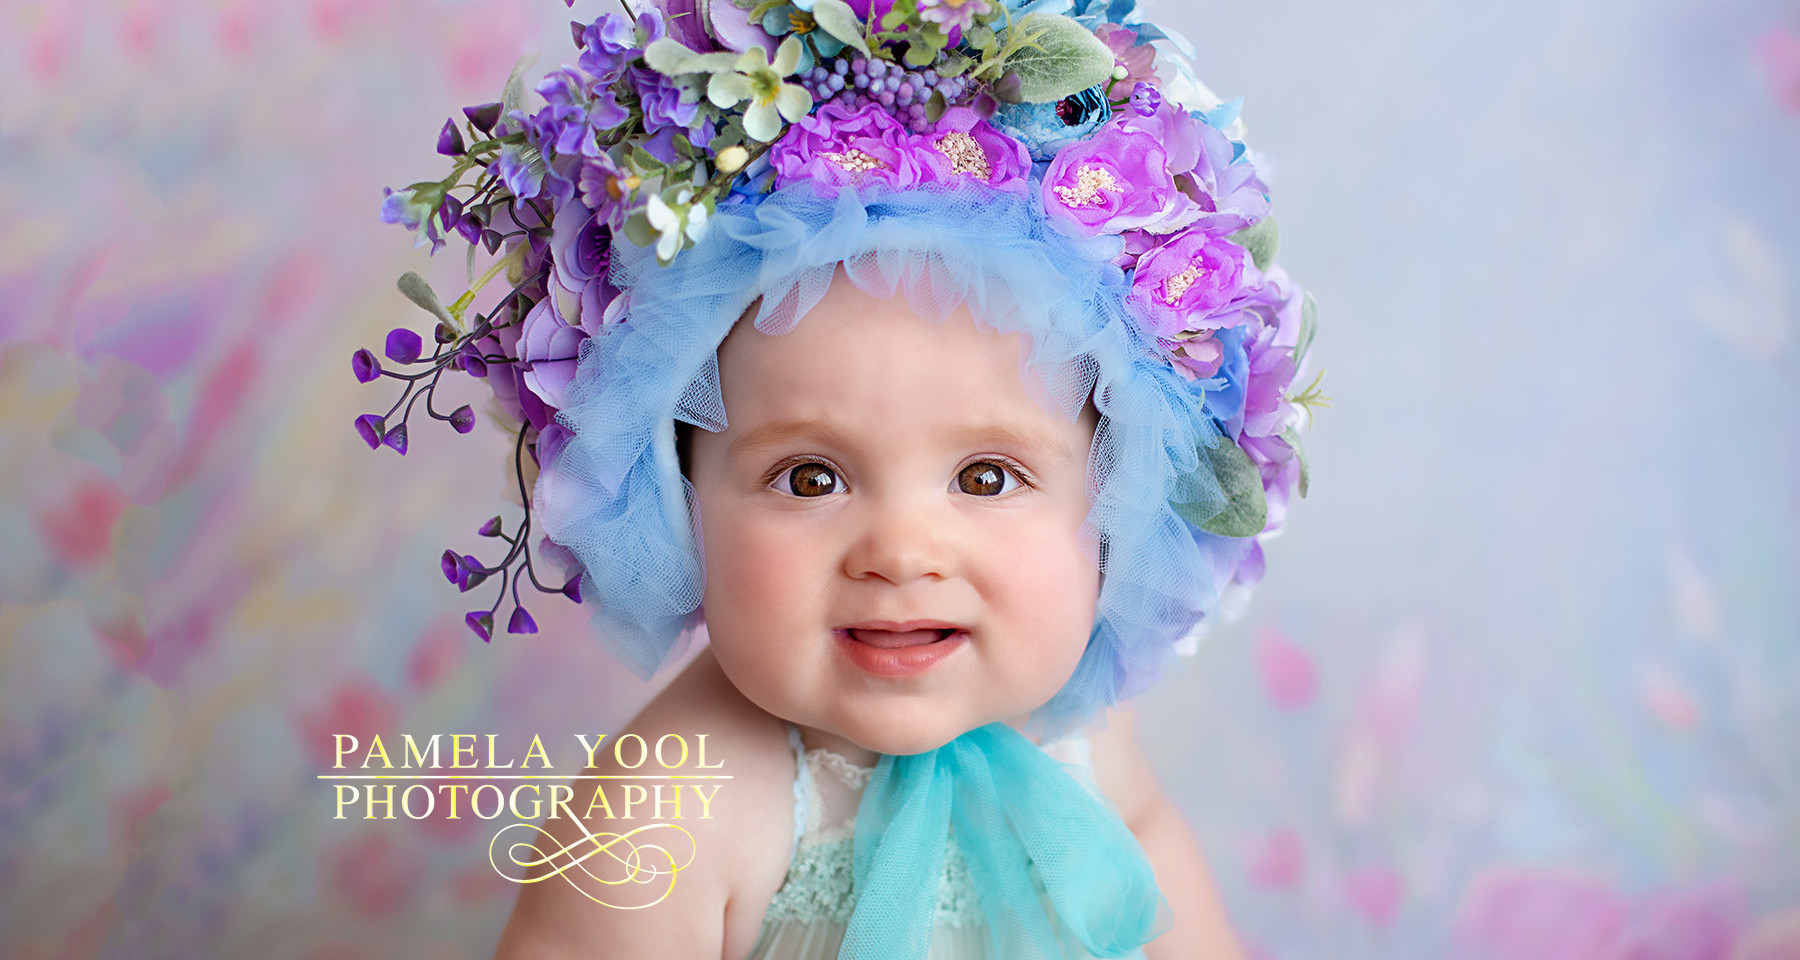 Baby Photos with Flower Bonnet Kath V Inspired